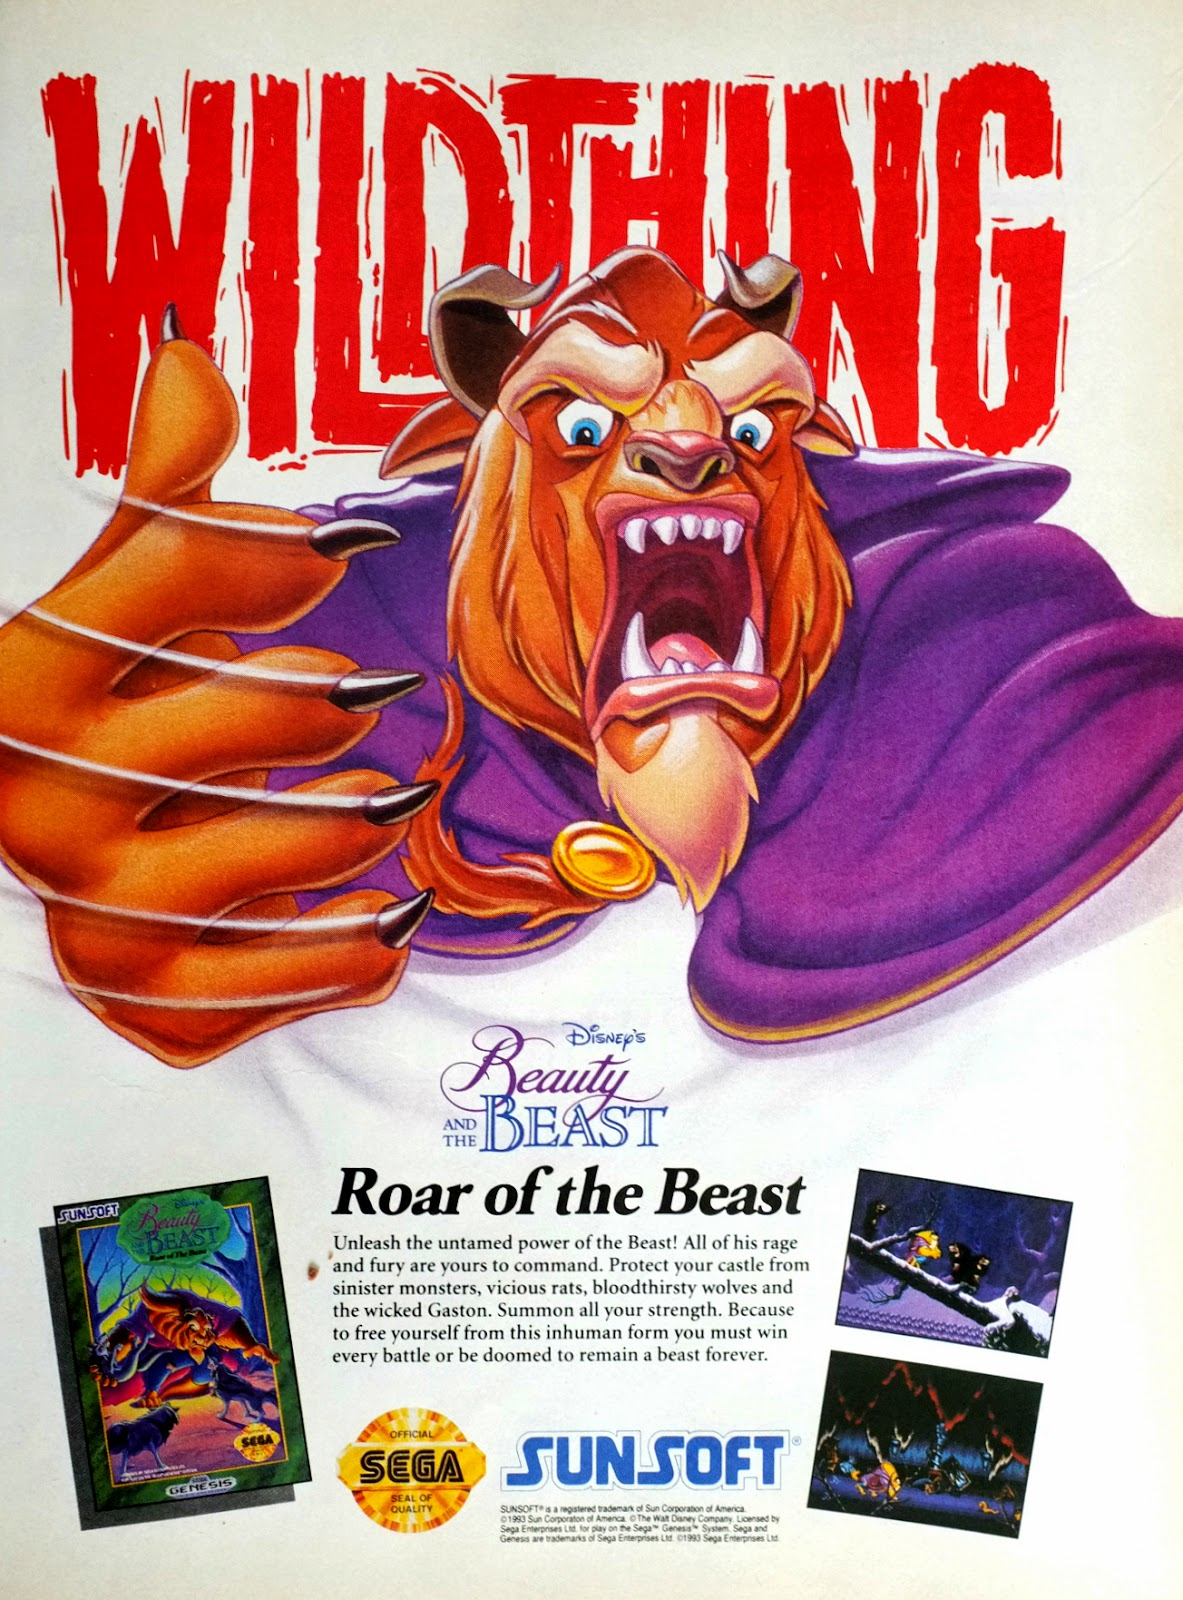 Beauty and the Beast. Roar of the Beast video game